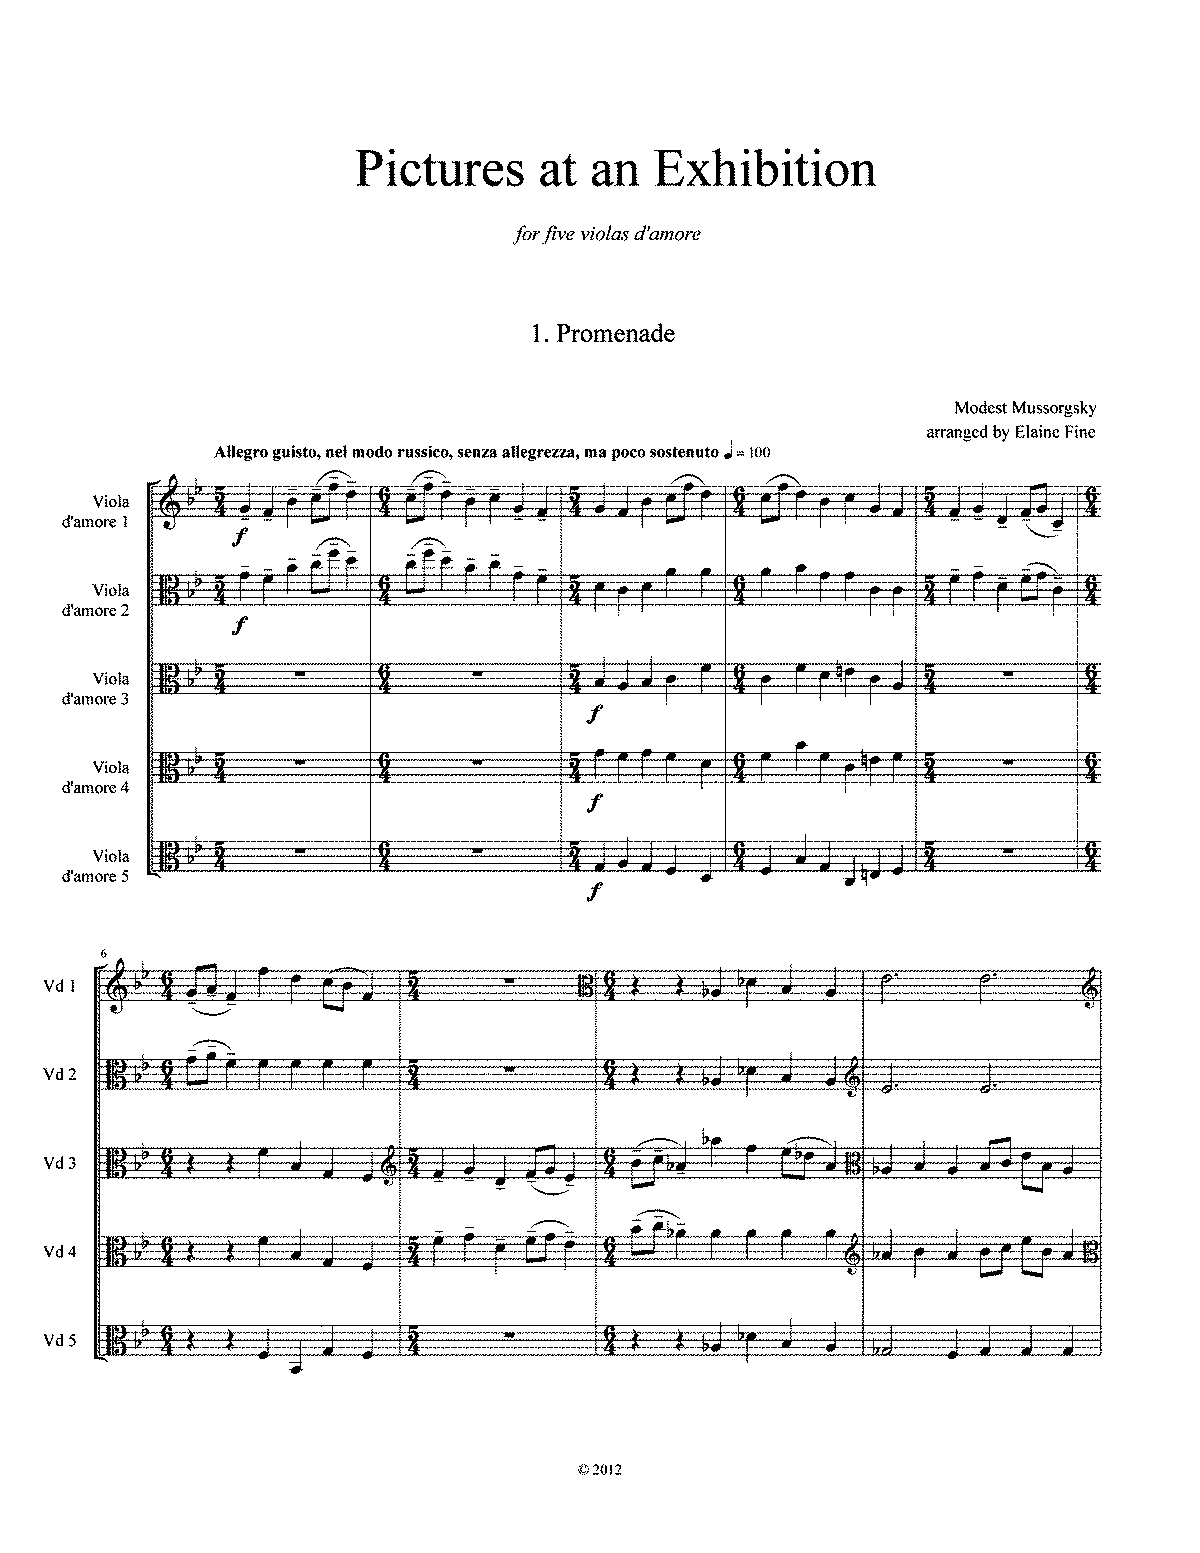 PMLP03722-Pictures for Fives Violas d'amore score.pdf